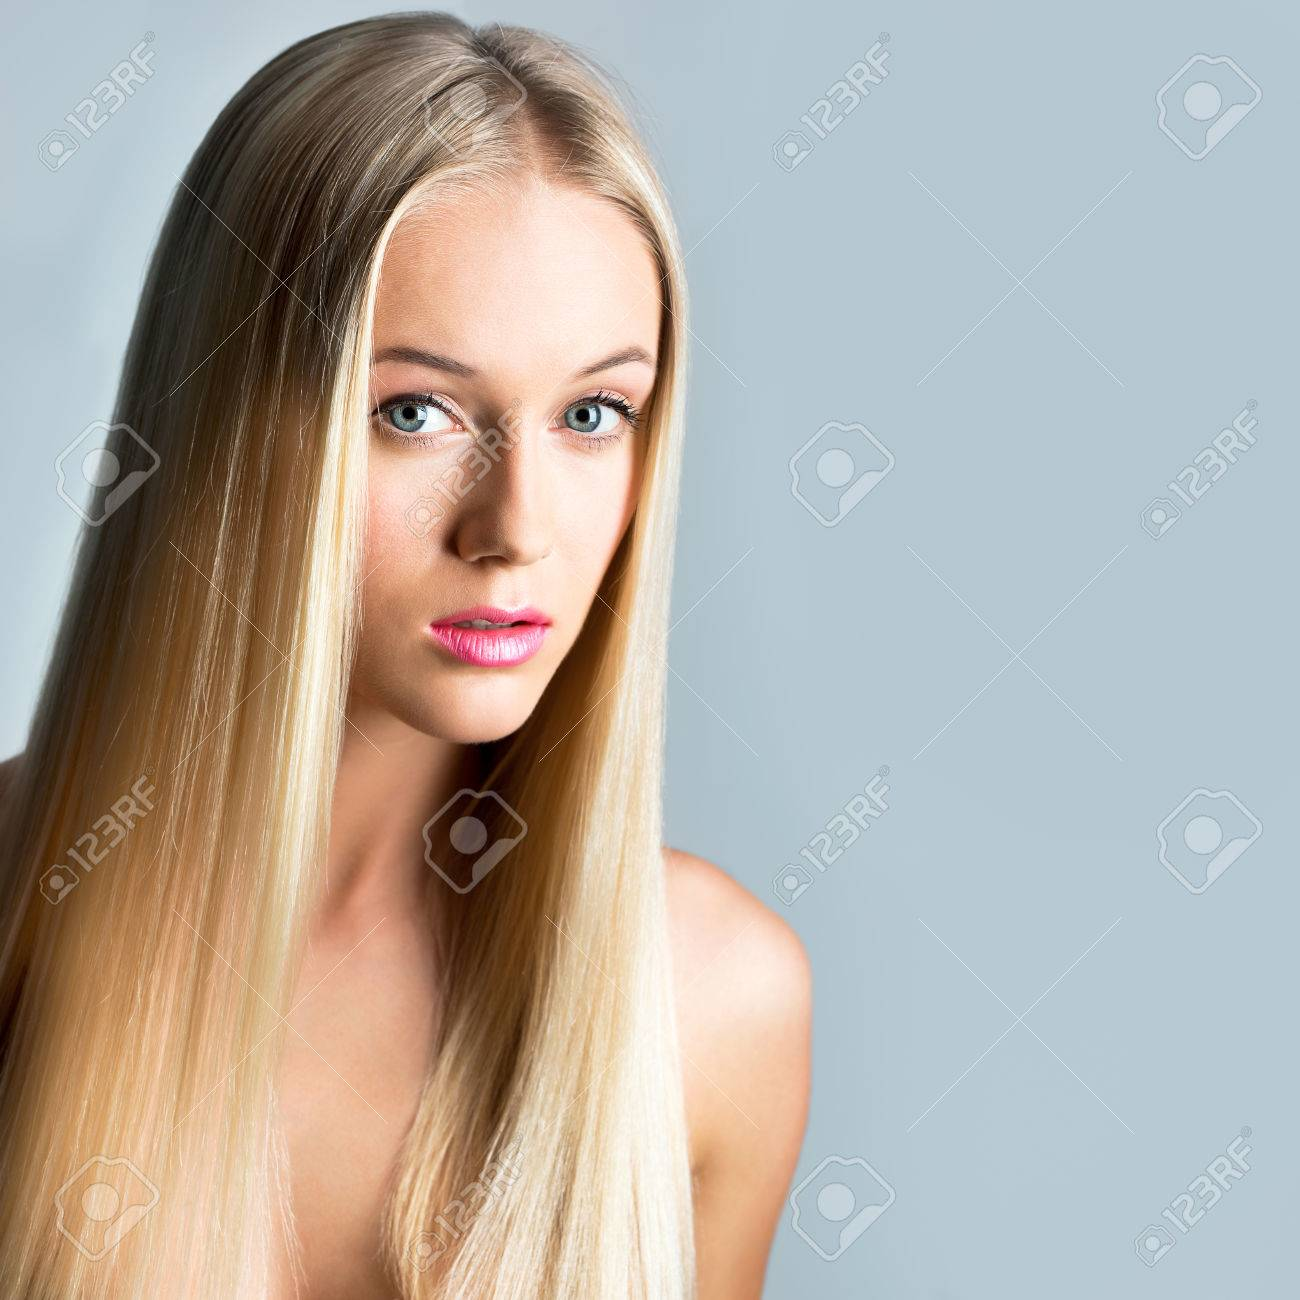 Beautiful young woman with a long hair - 29890530